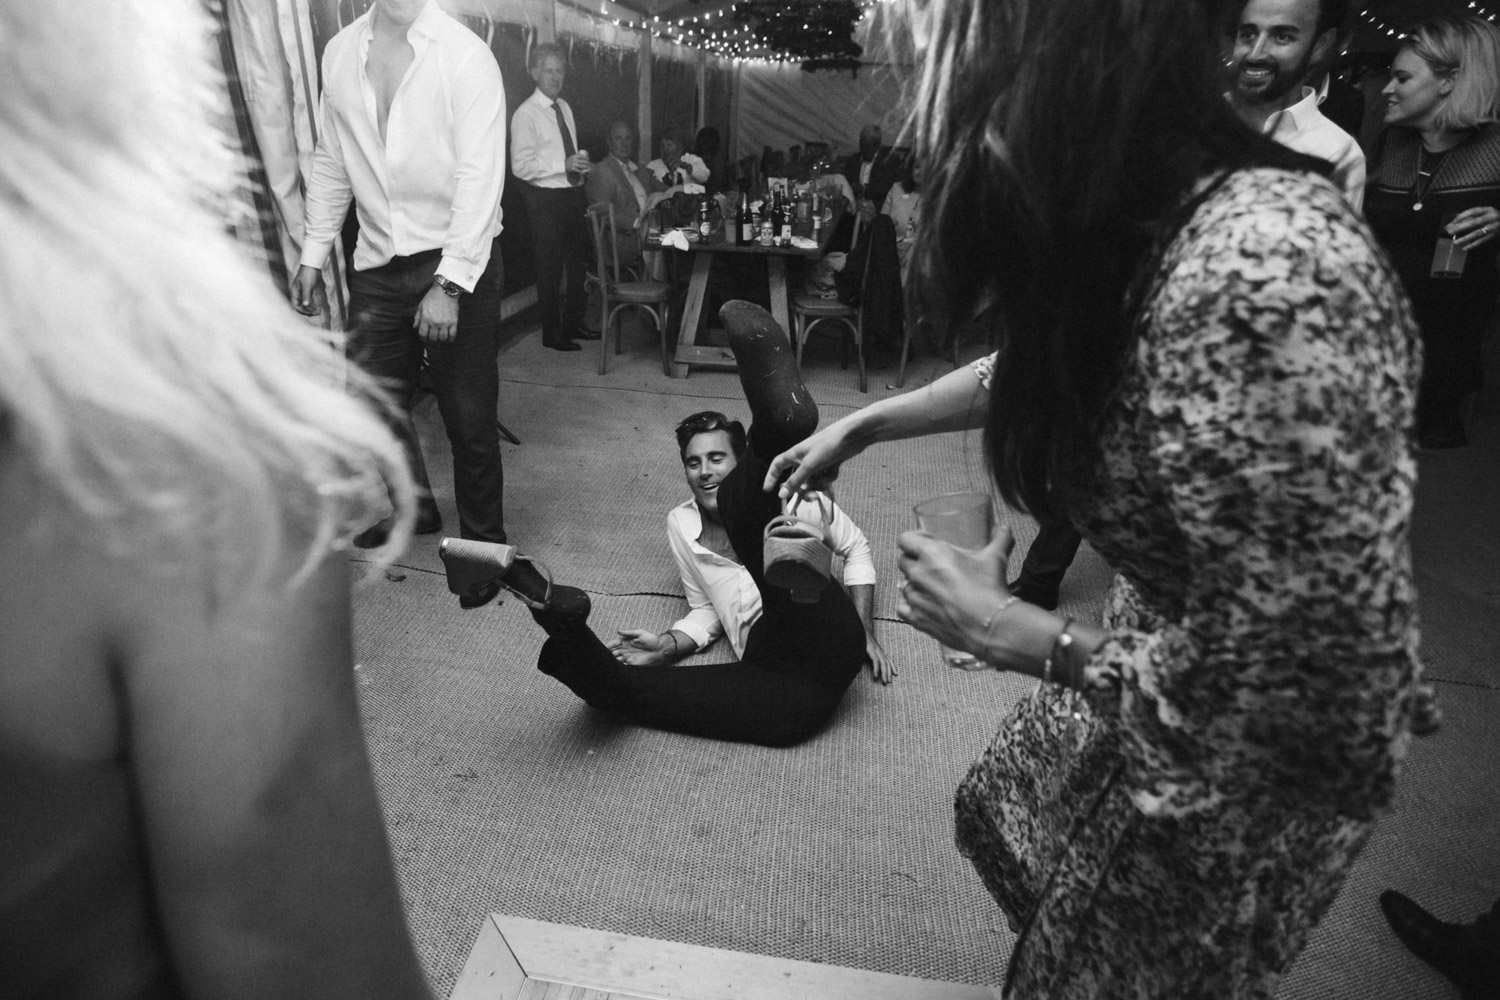 a guest falling over because he's wearing high heels on the dance floor